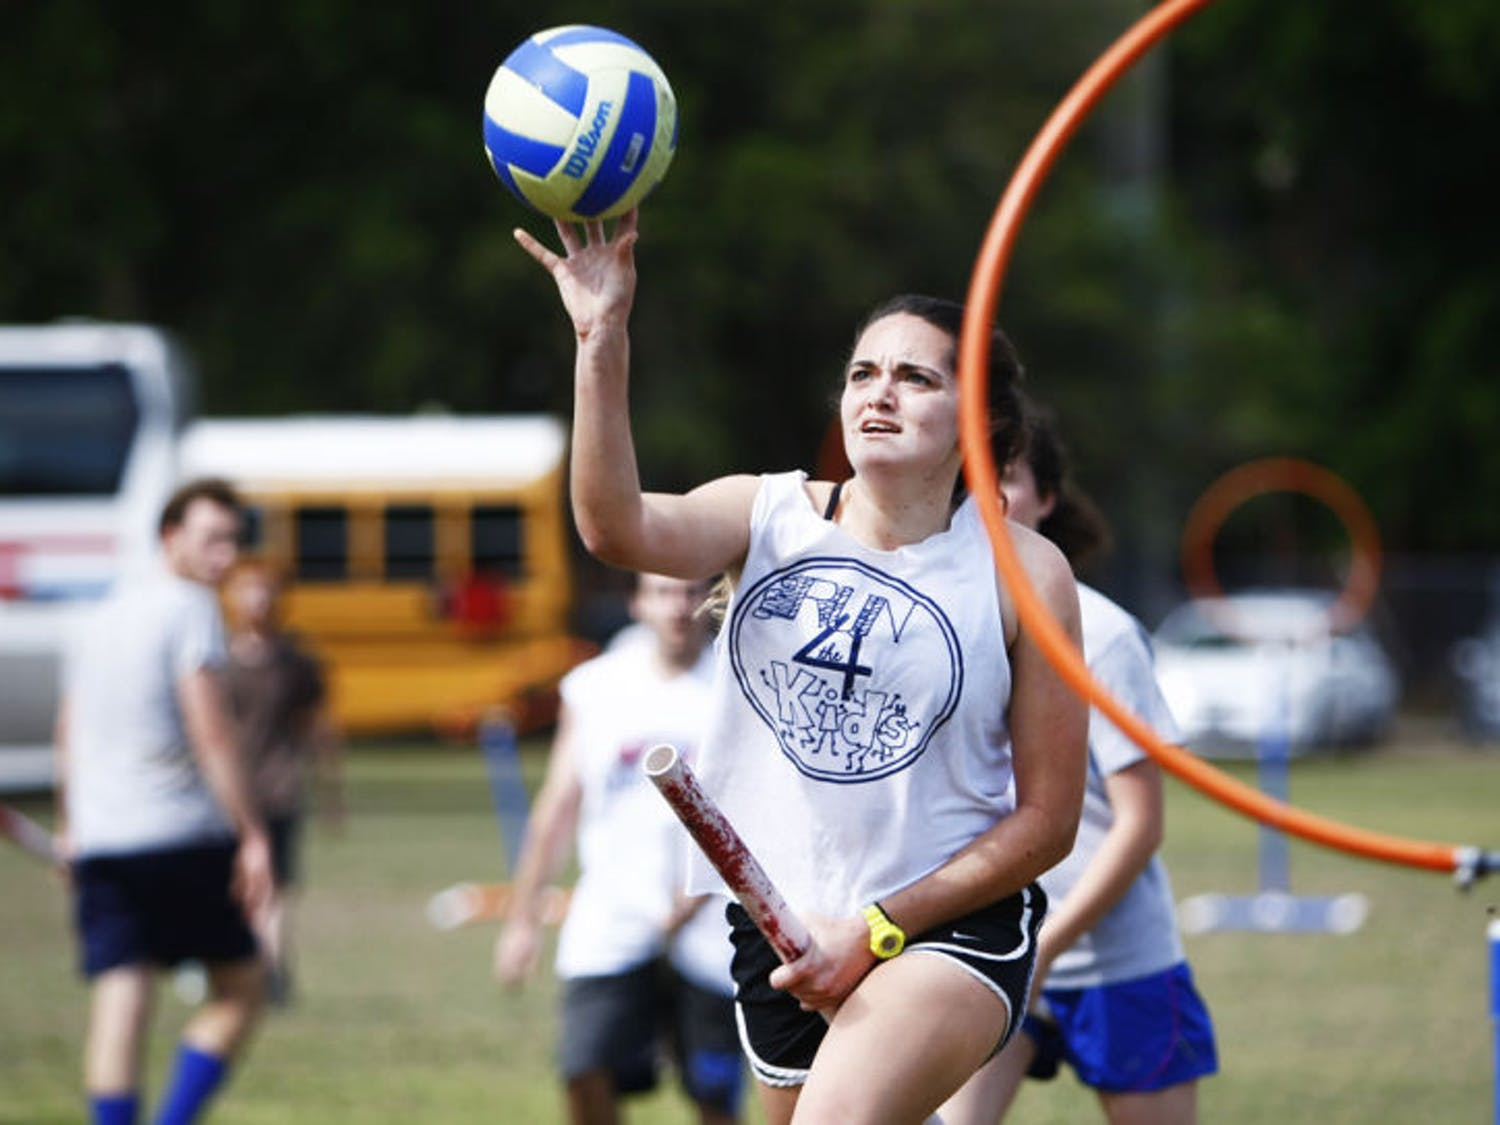 Margaret Egeln, a 19-year-old UF biology freshman, attempts a shot during the Florida Quidditch team practice Saturday on Flavet Field. The Florida Quidditch team will head to Kissimmee this weekend to participate in the sixth annual World Cup.